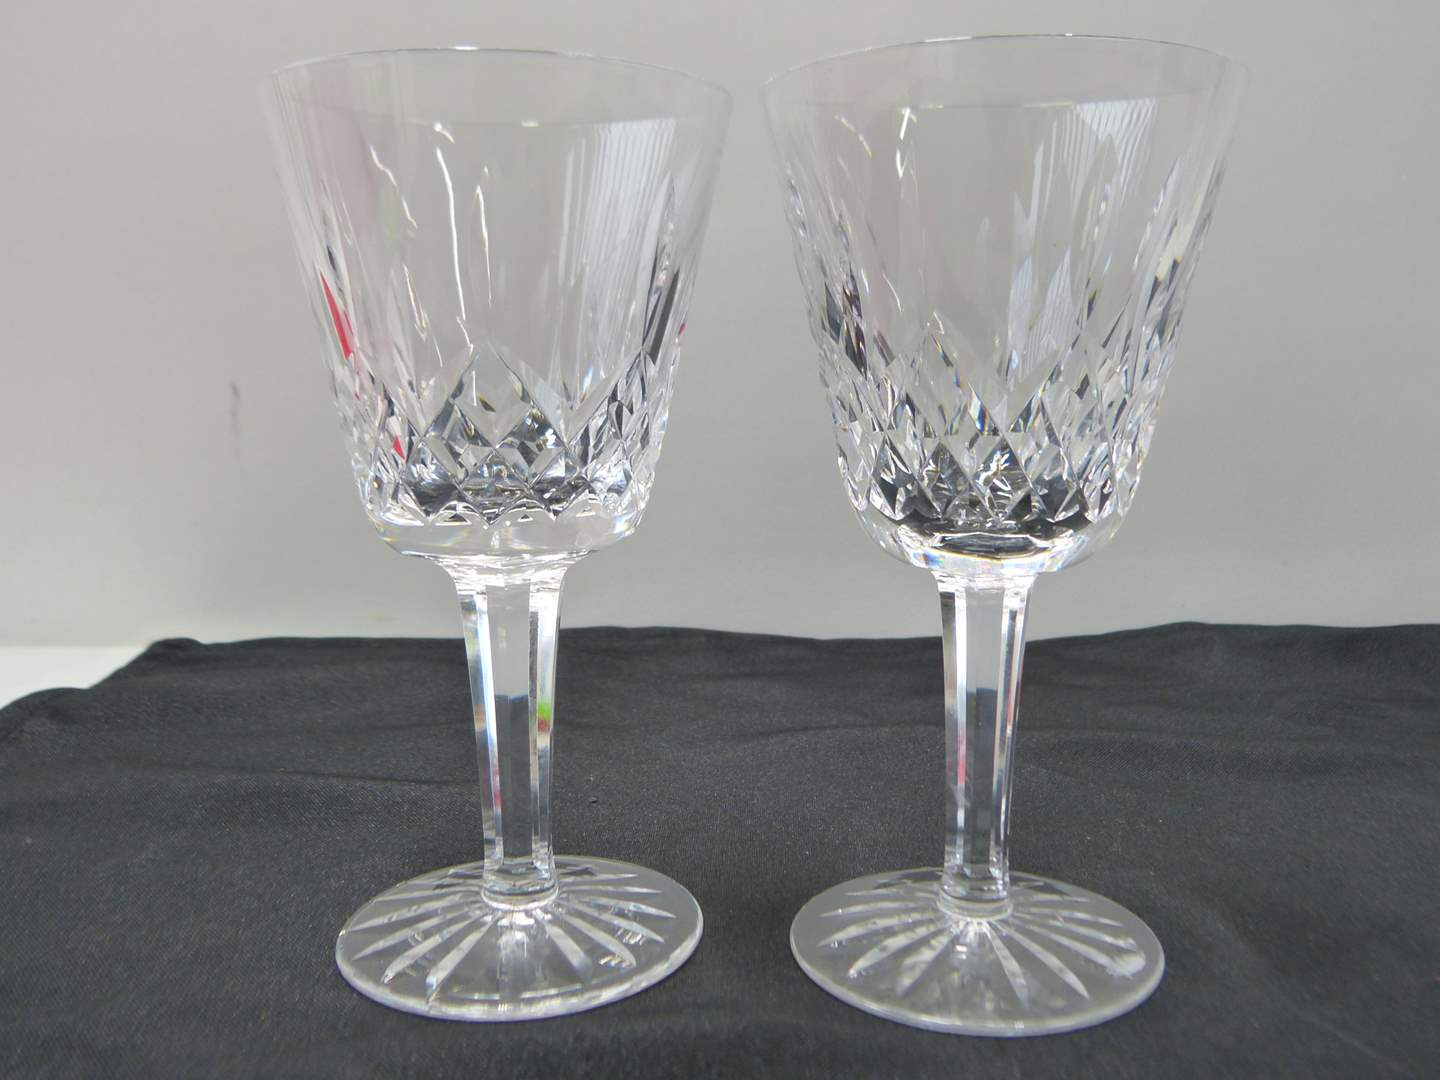 Lot # 32  2 Waterford Lismore pattern wine glasses (main image)